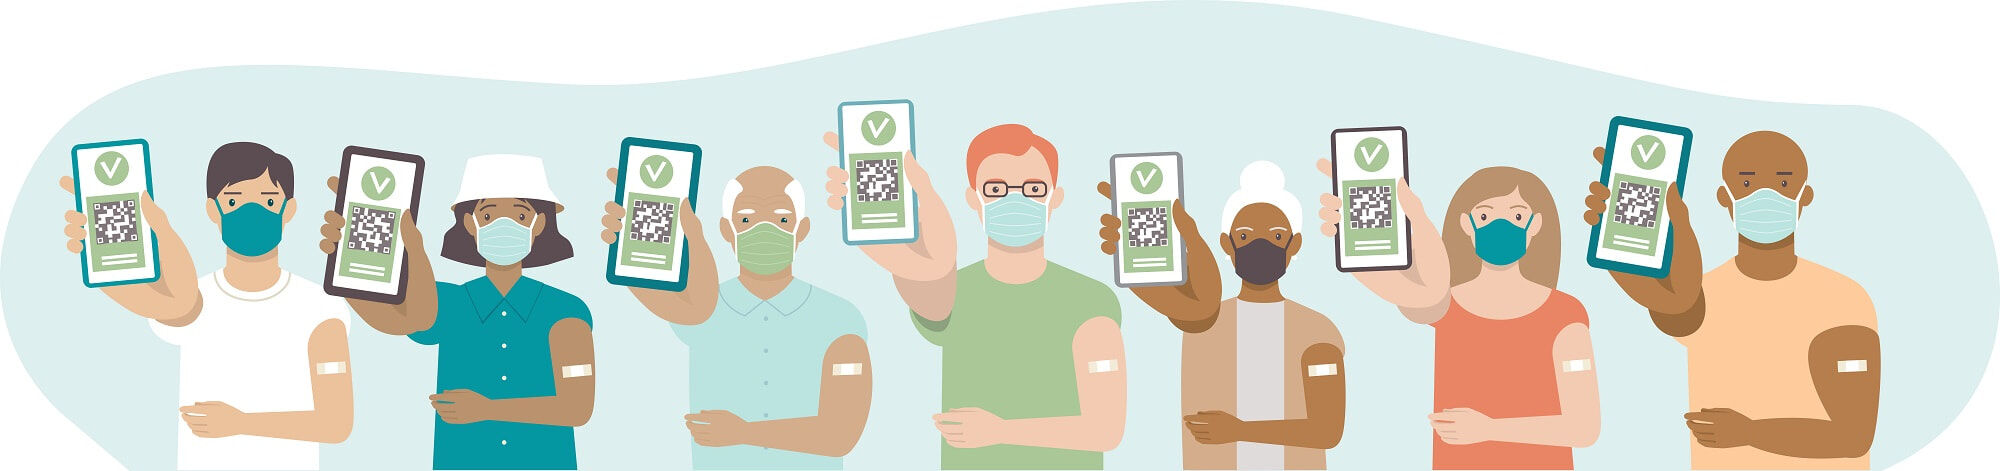 Vaccinated people showing vaccination certificates. Young man showing an app in mobile phone. Elderly woman hold printed immunization certificate with QR code.